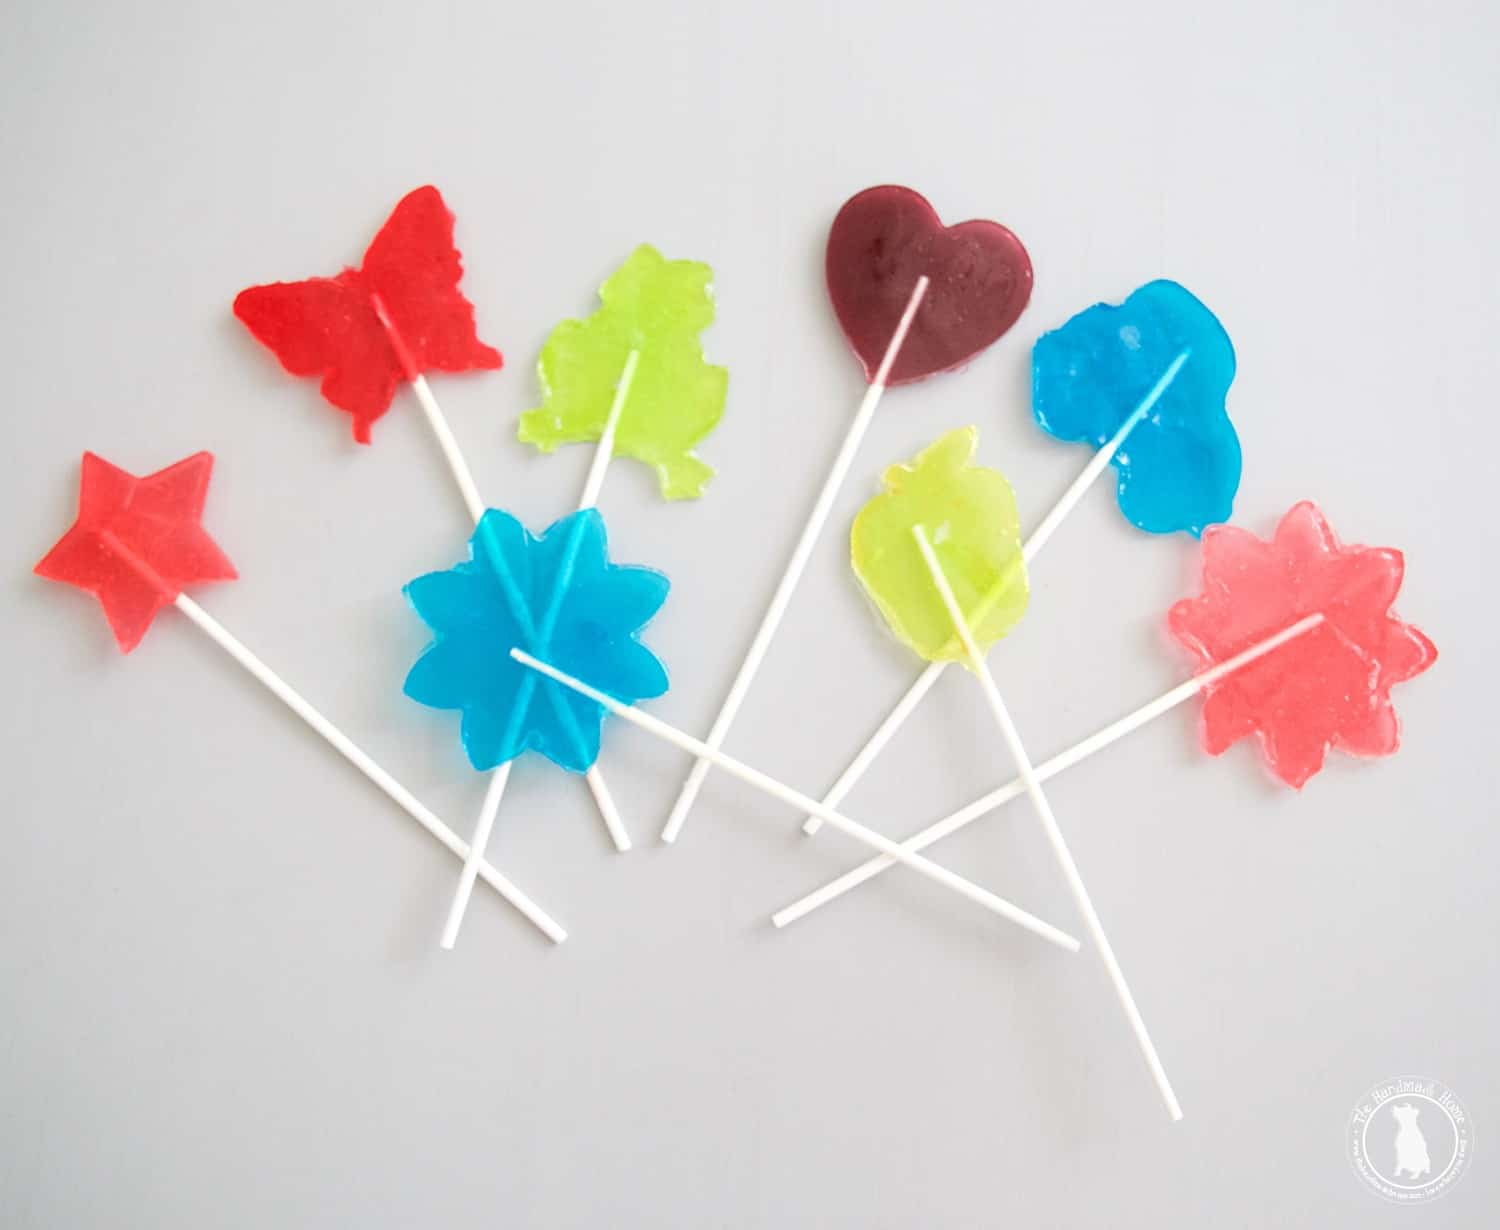 Star and heart shaped lollipops